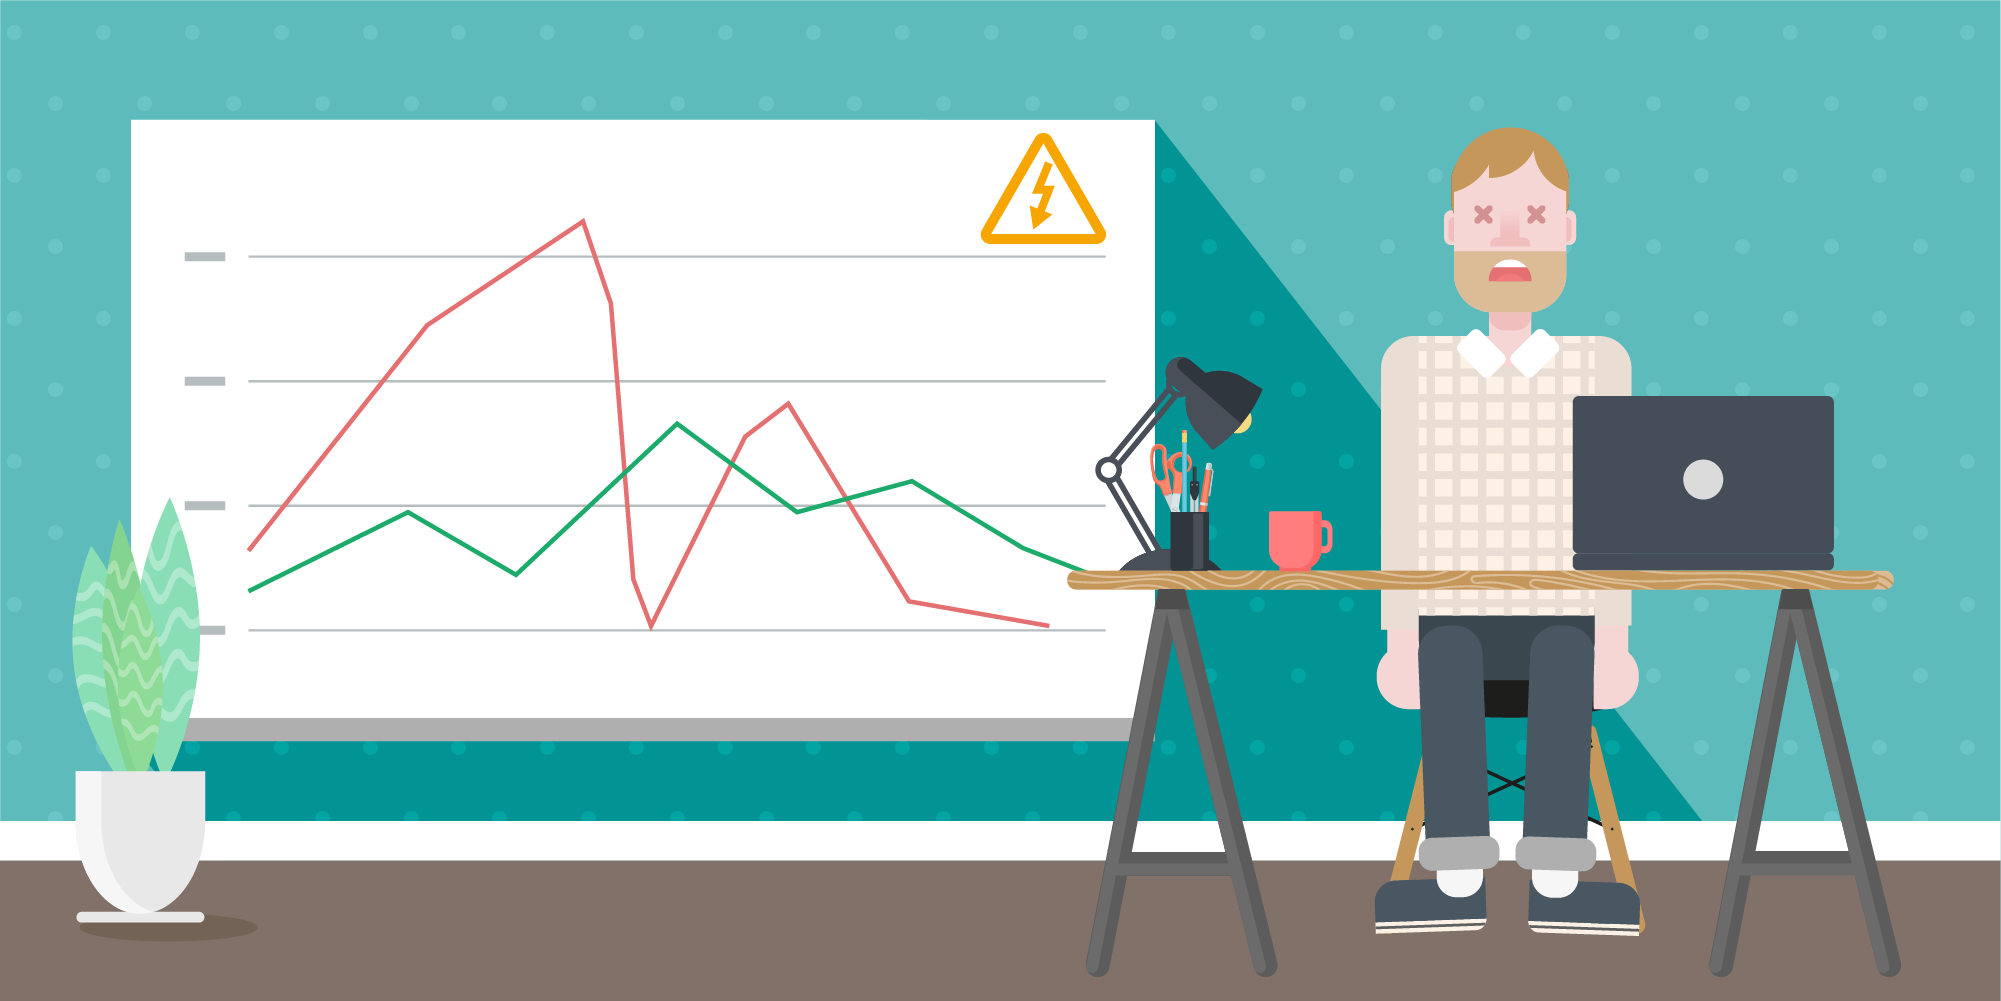 Call center scheduling: 2 simple methods to measure efficiency